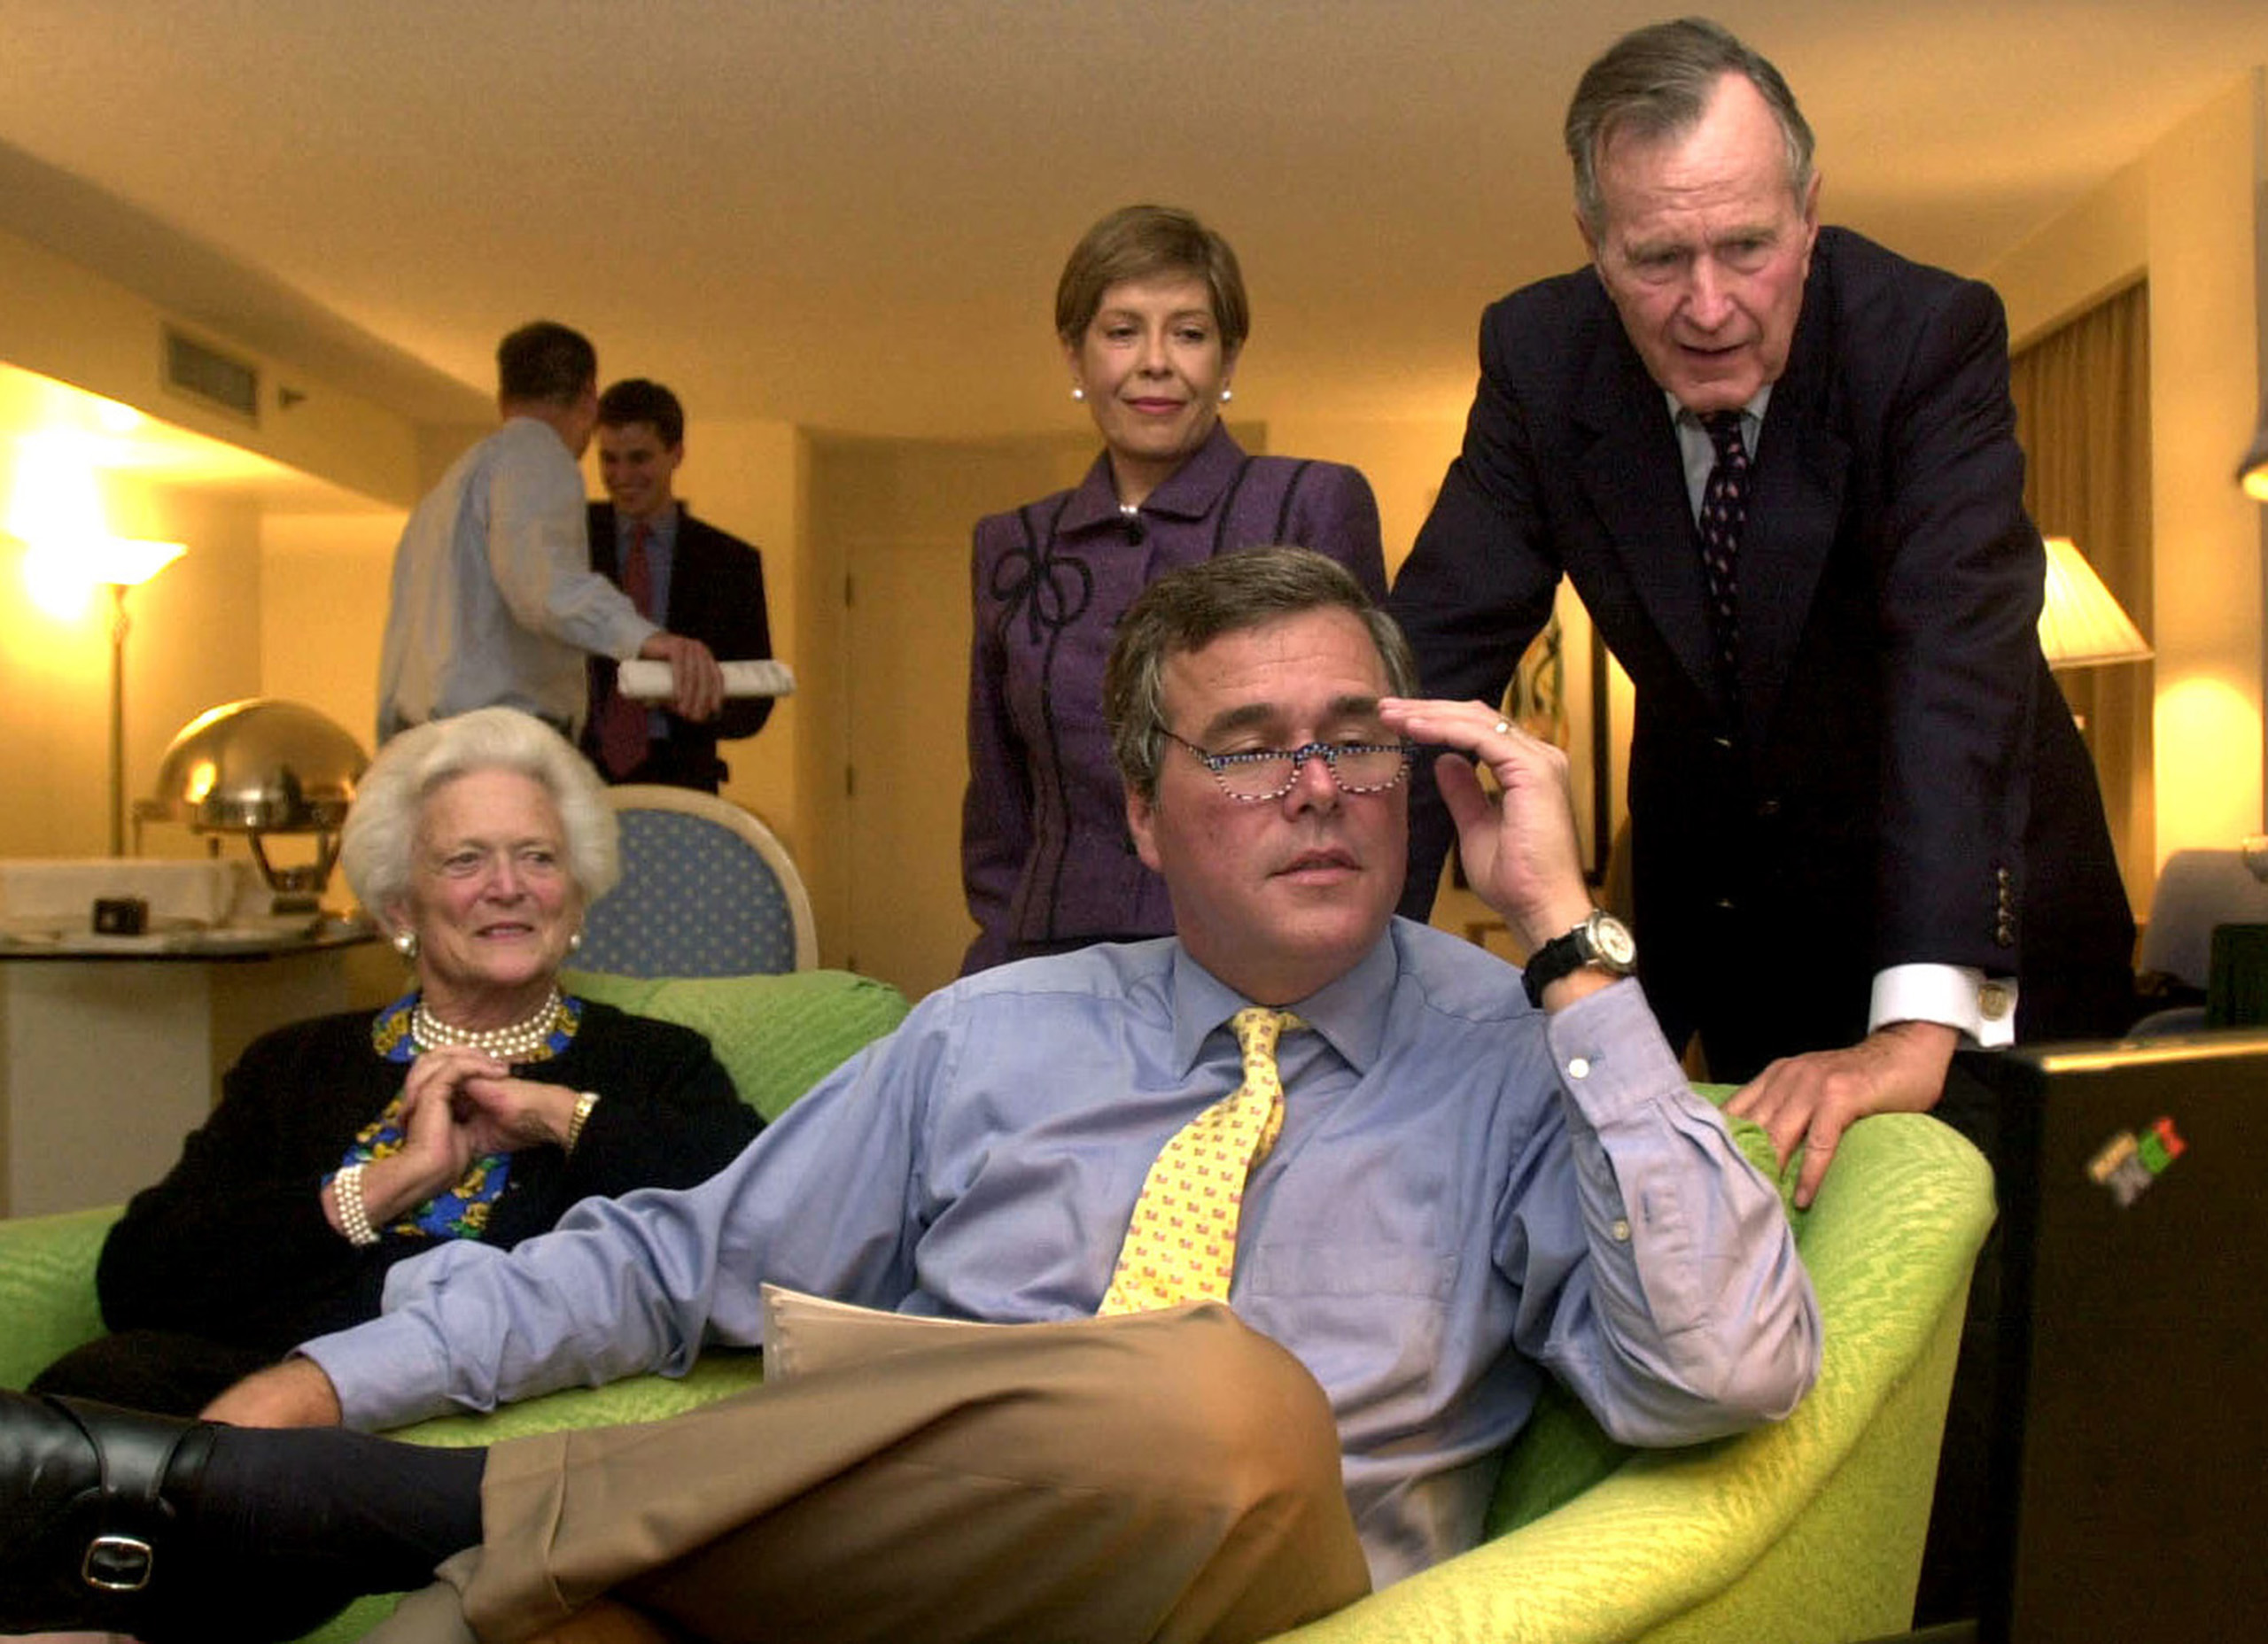 Republican governor of Florida, Jeb Bush, studies his laptop watching vote returns for his reelection his wife Columba Bush and his parents, former President George Bush and first lady Barbara Bush in Miami on Nov. 5, 2002.